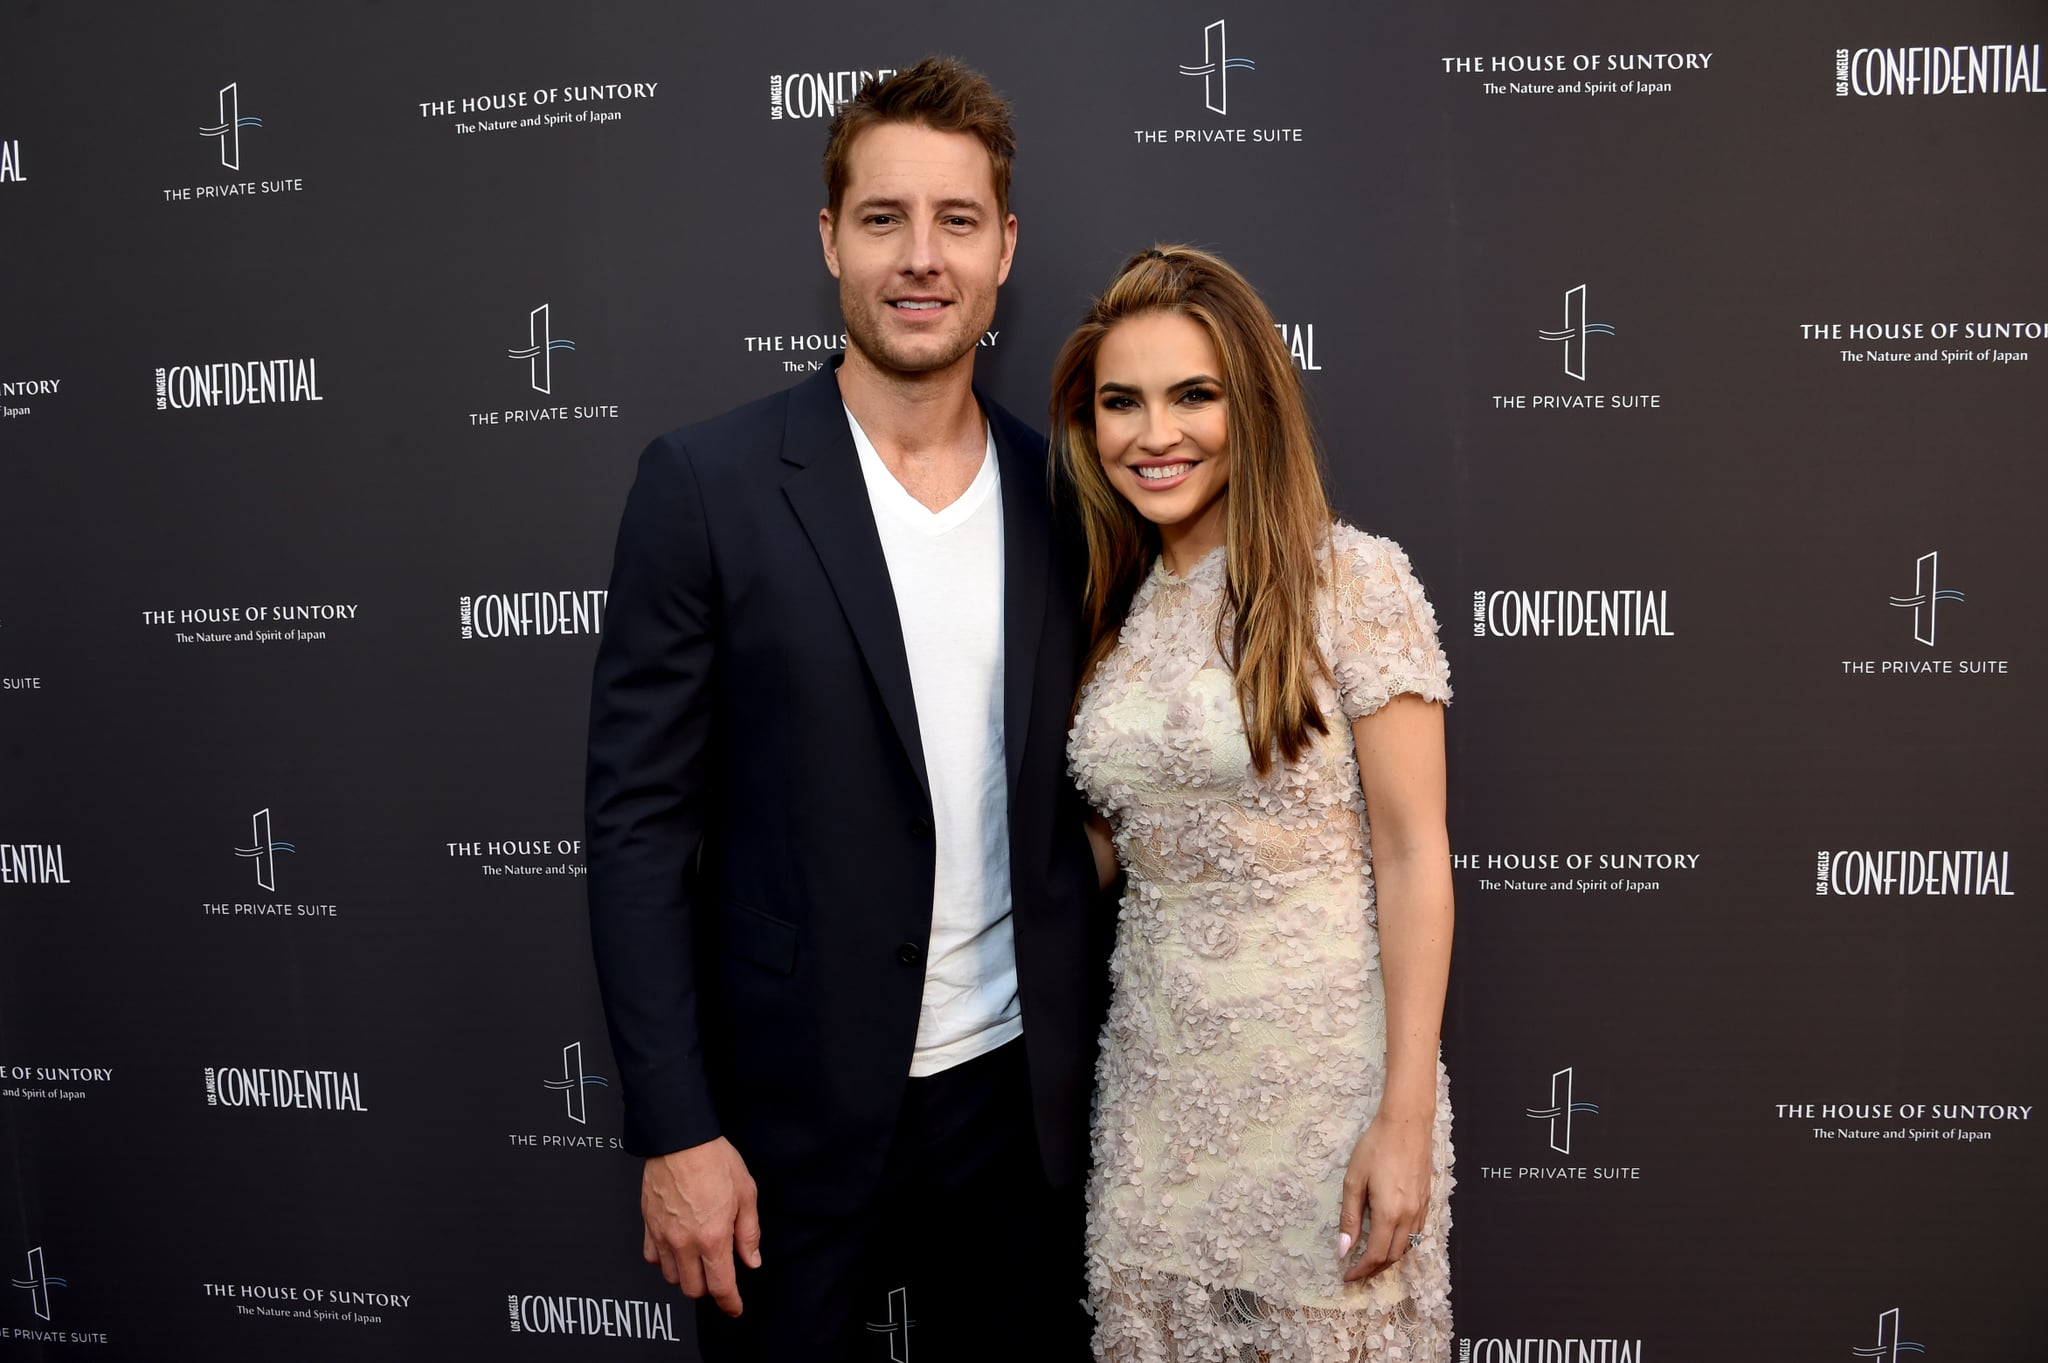 LOS ANGELES, CALIFORNIA - JUNE 09: Justin Hartley and Chrishell Hartley attend the Los Angeles Confidential Impact Awards at The LINE Hotel on June 09, 2019 in Los Angeles, California. (Photo by Michael Kovac/Getty Images for Los Angeles Confidential)